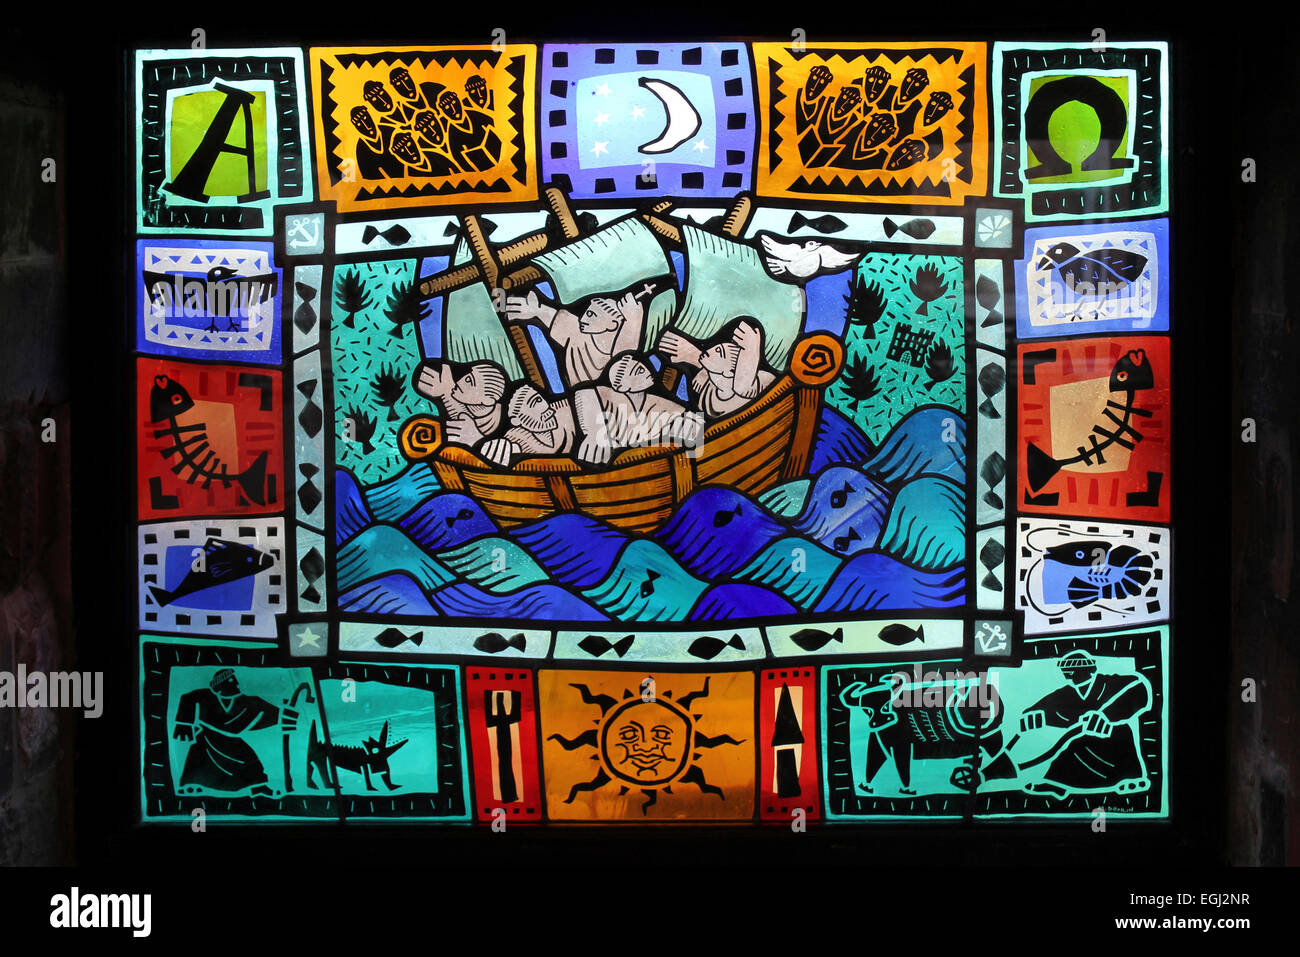 Modern Stained Glass Window Of A Monk's Ferry Boat Sailing Across The River Mersey by Martin Donlin 1992 - Stock Image